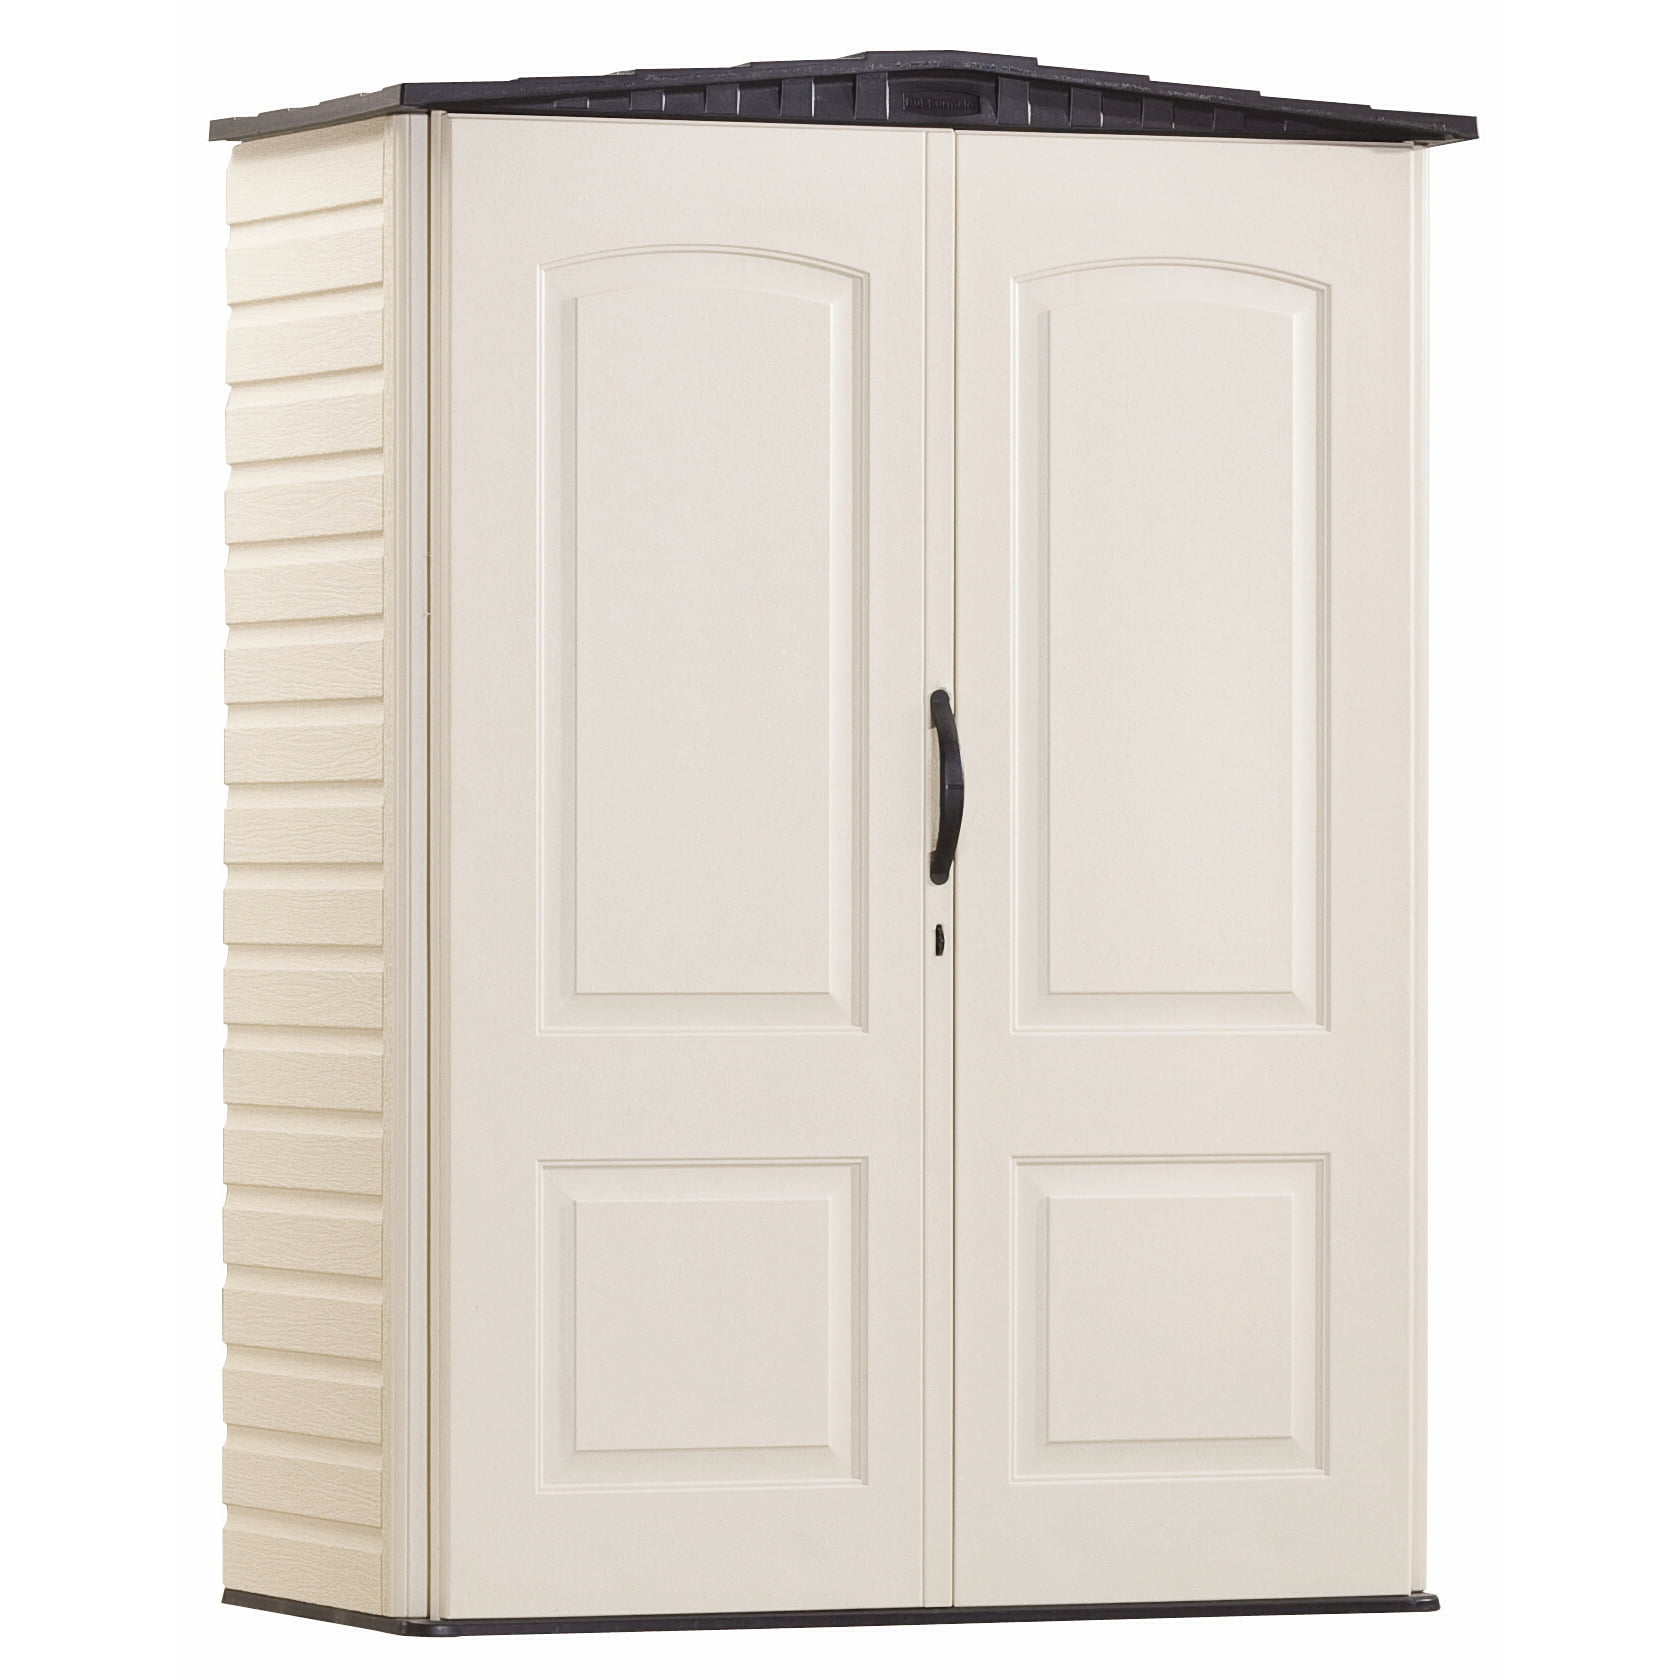 Rubbermaid 5 x 2 ft Small Vertical Storage Shed, Sandstone & Onyx by Rubbermaid Home Products